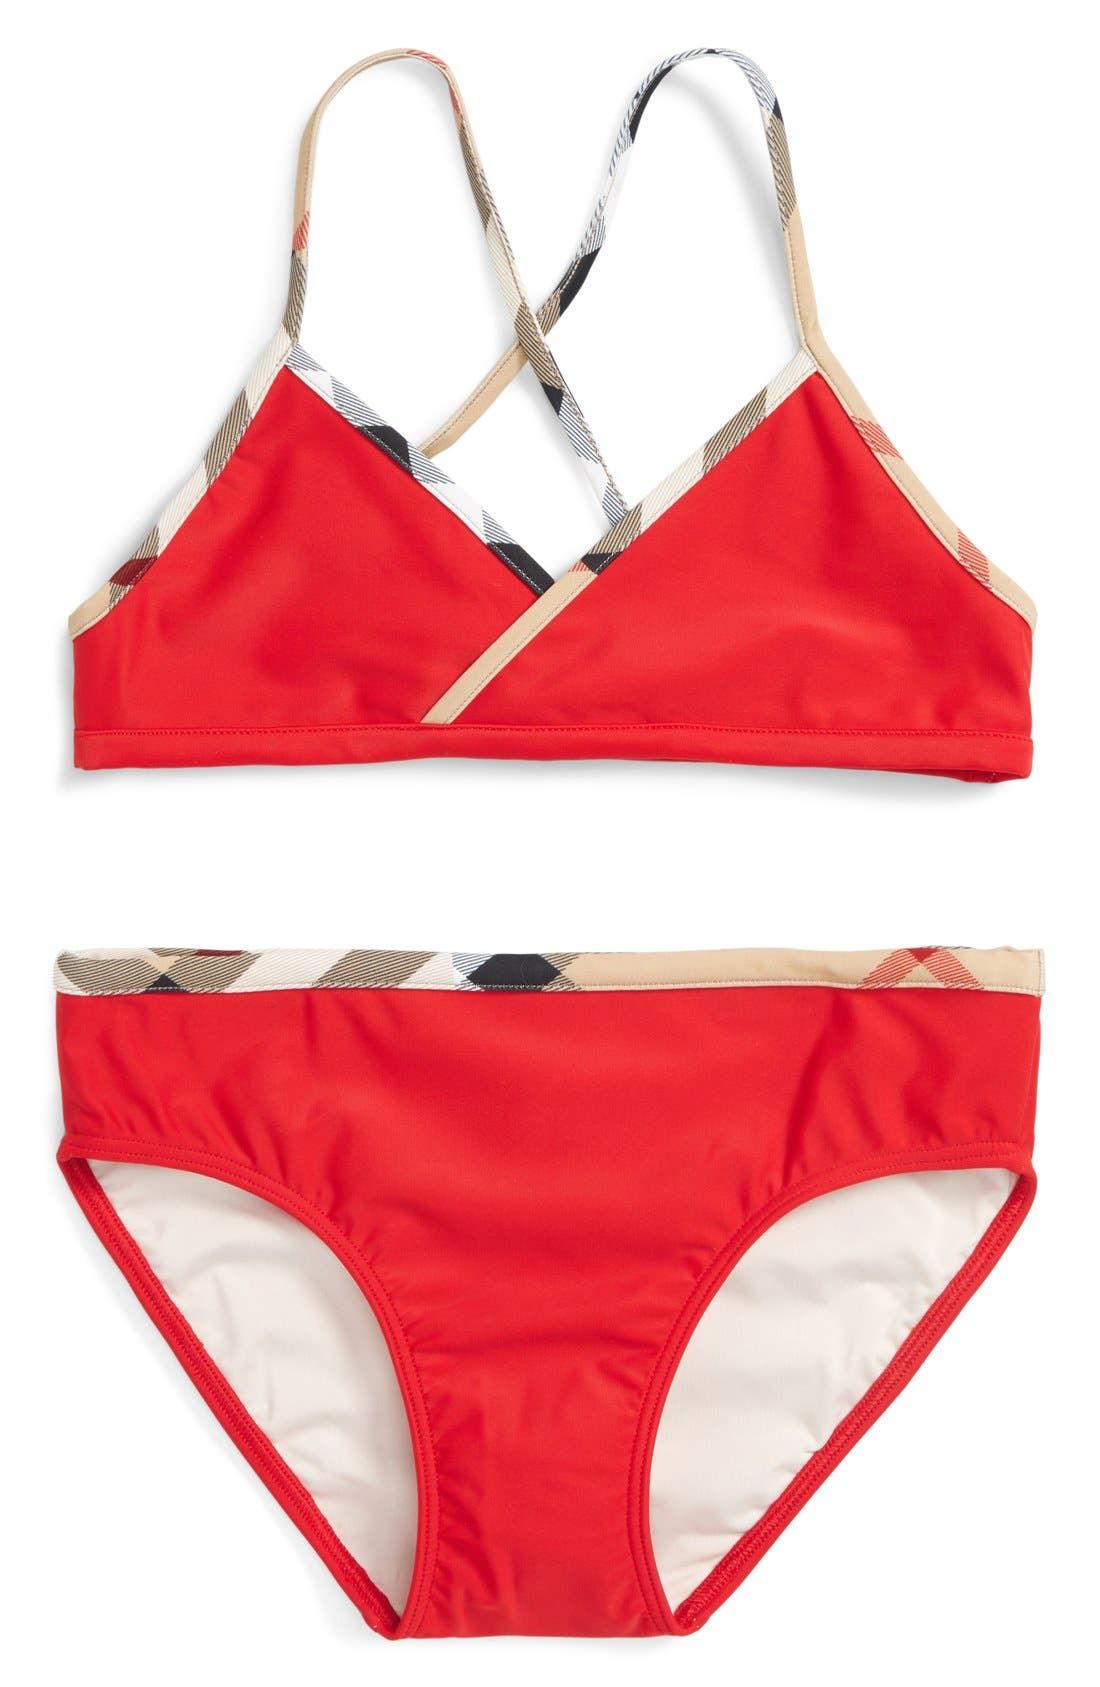 'Crosby' Two-Piece Swimsuit,                         Main,                         color, Poppy Red